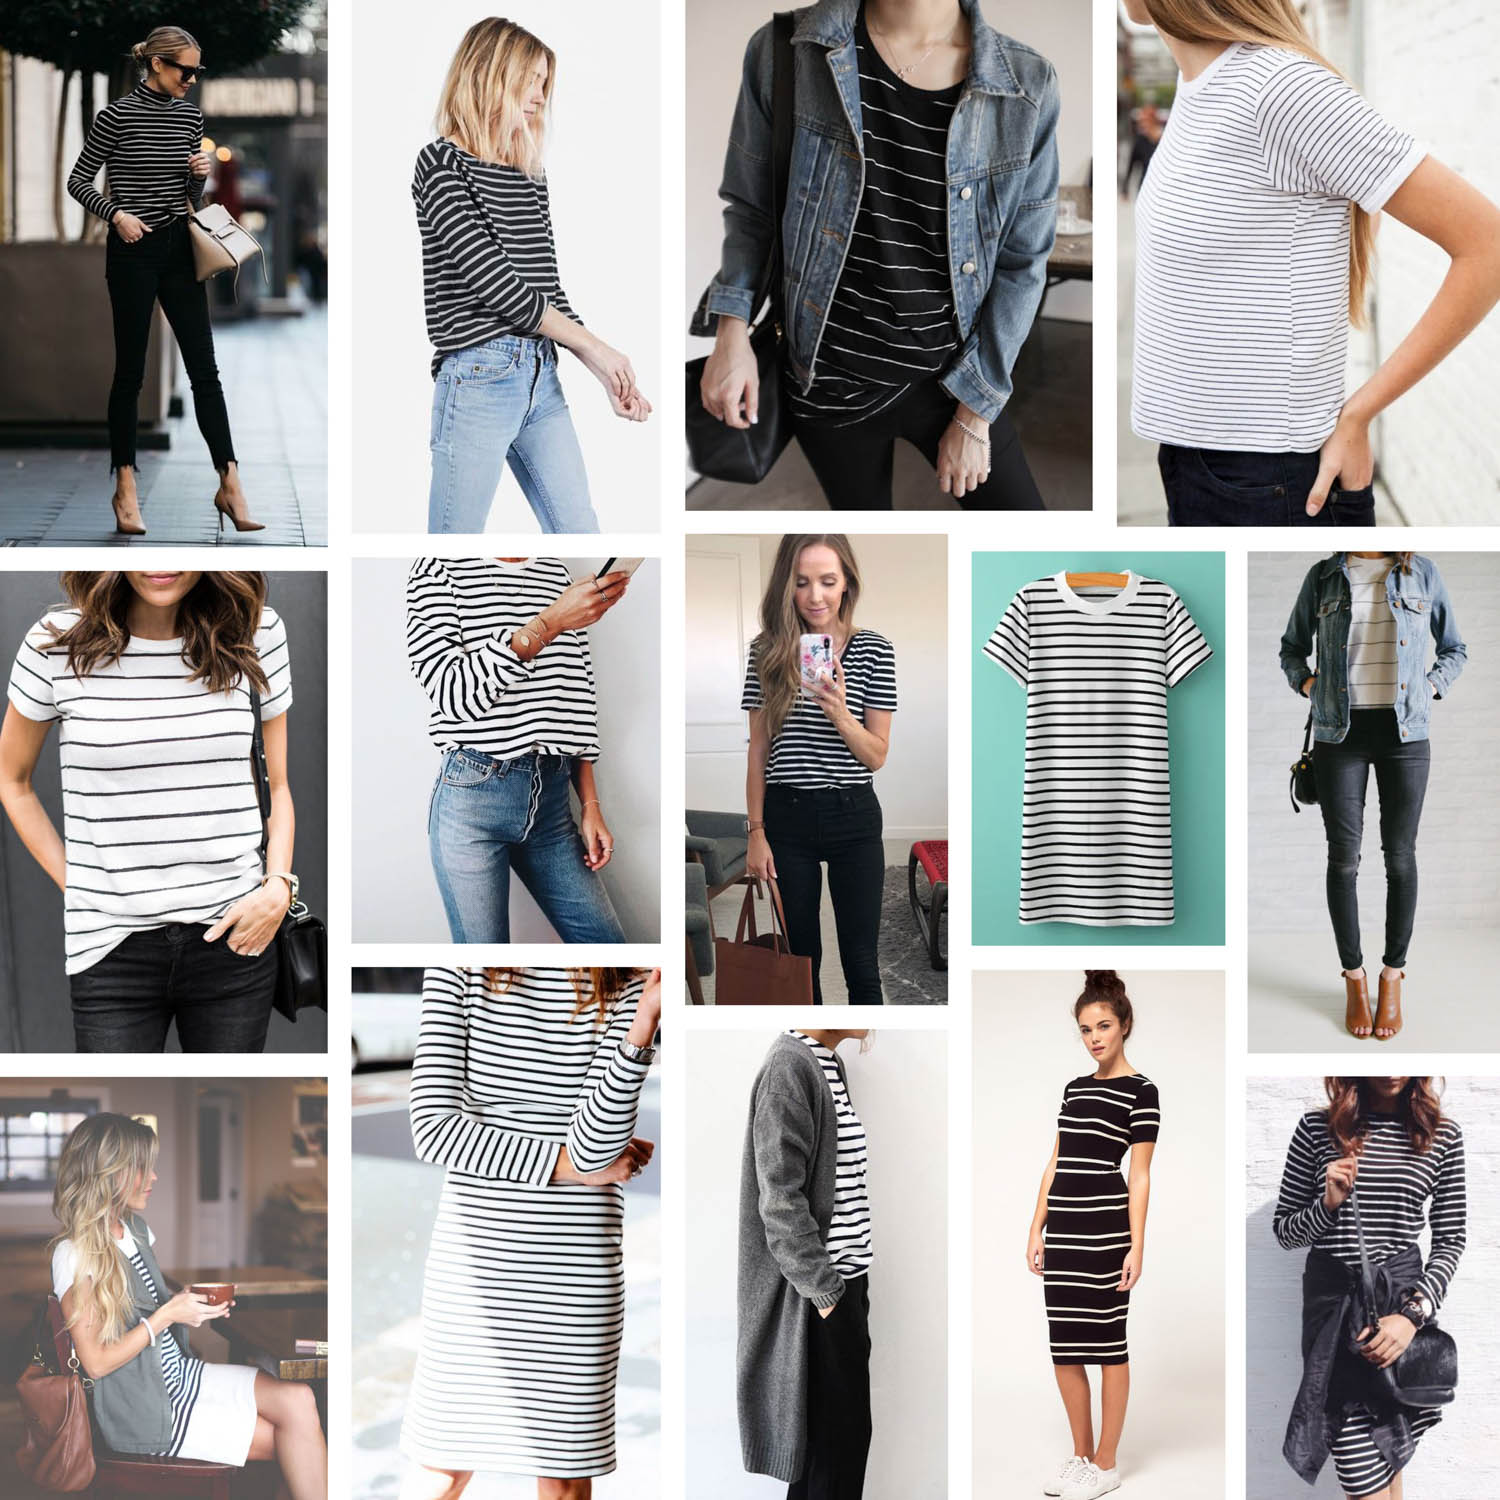 Striped Shirt Inspiration